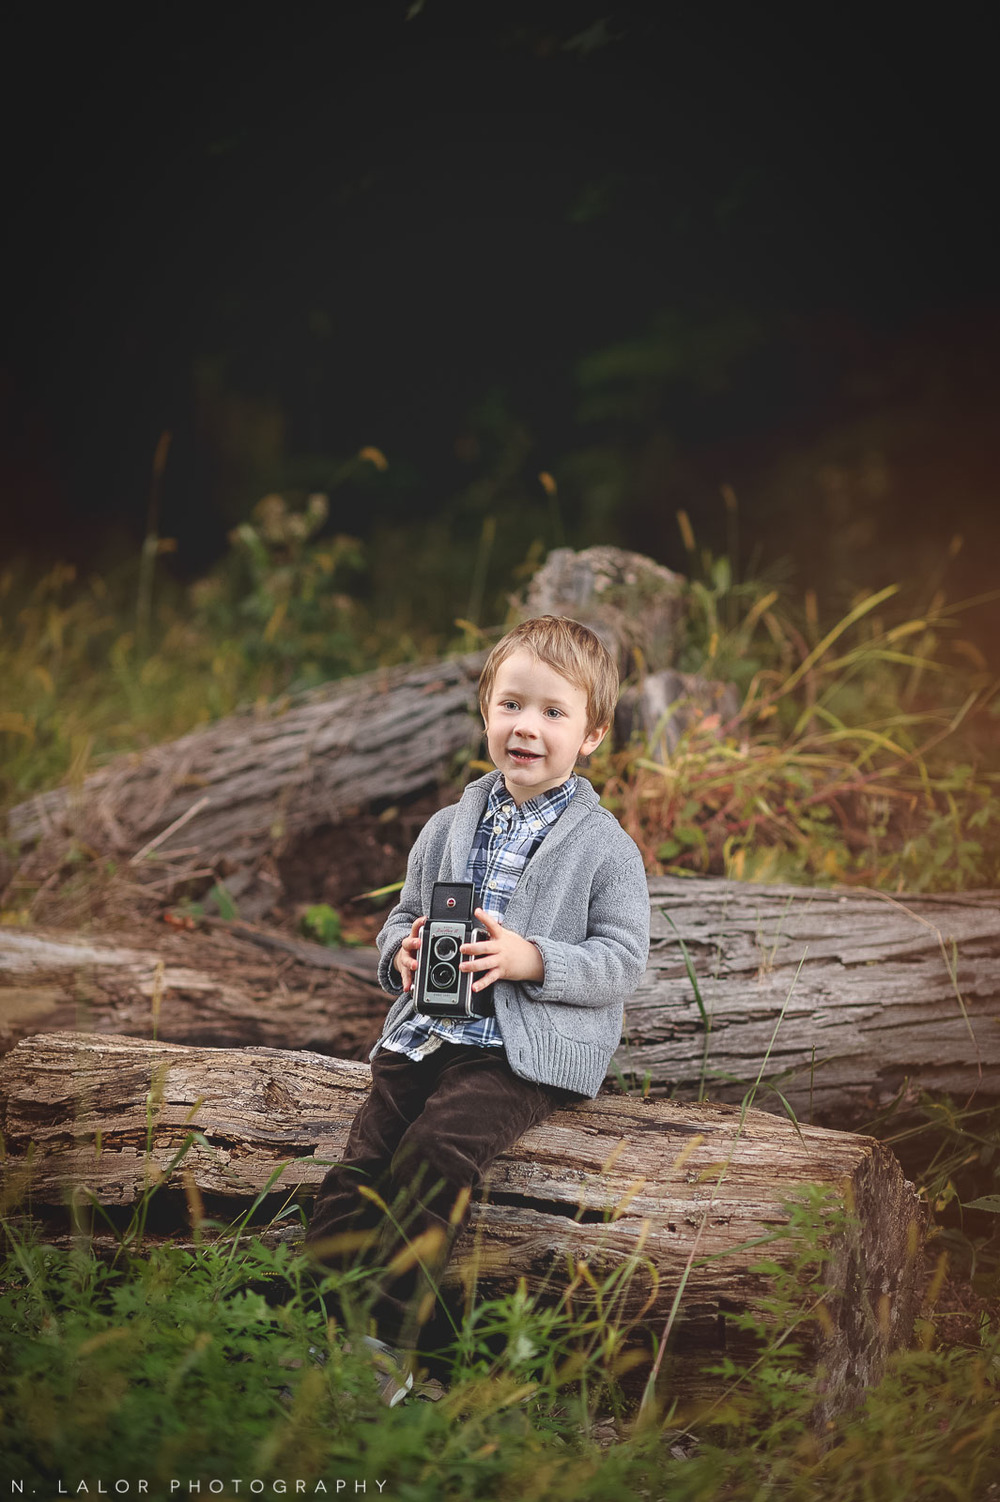 nlalor-photography-boy-fall-new-canaan-nature-center-photo-session-11.jpg